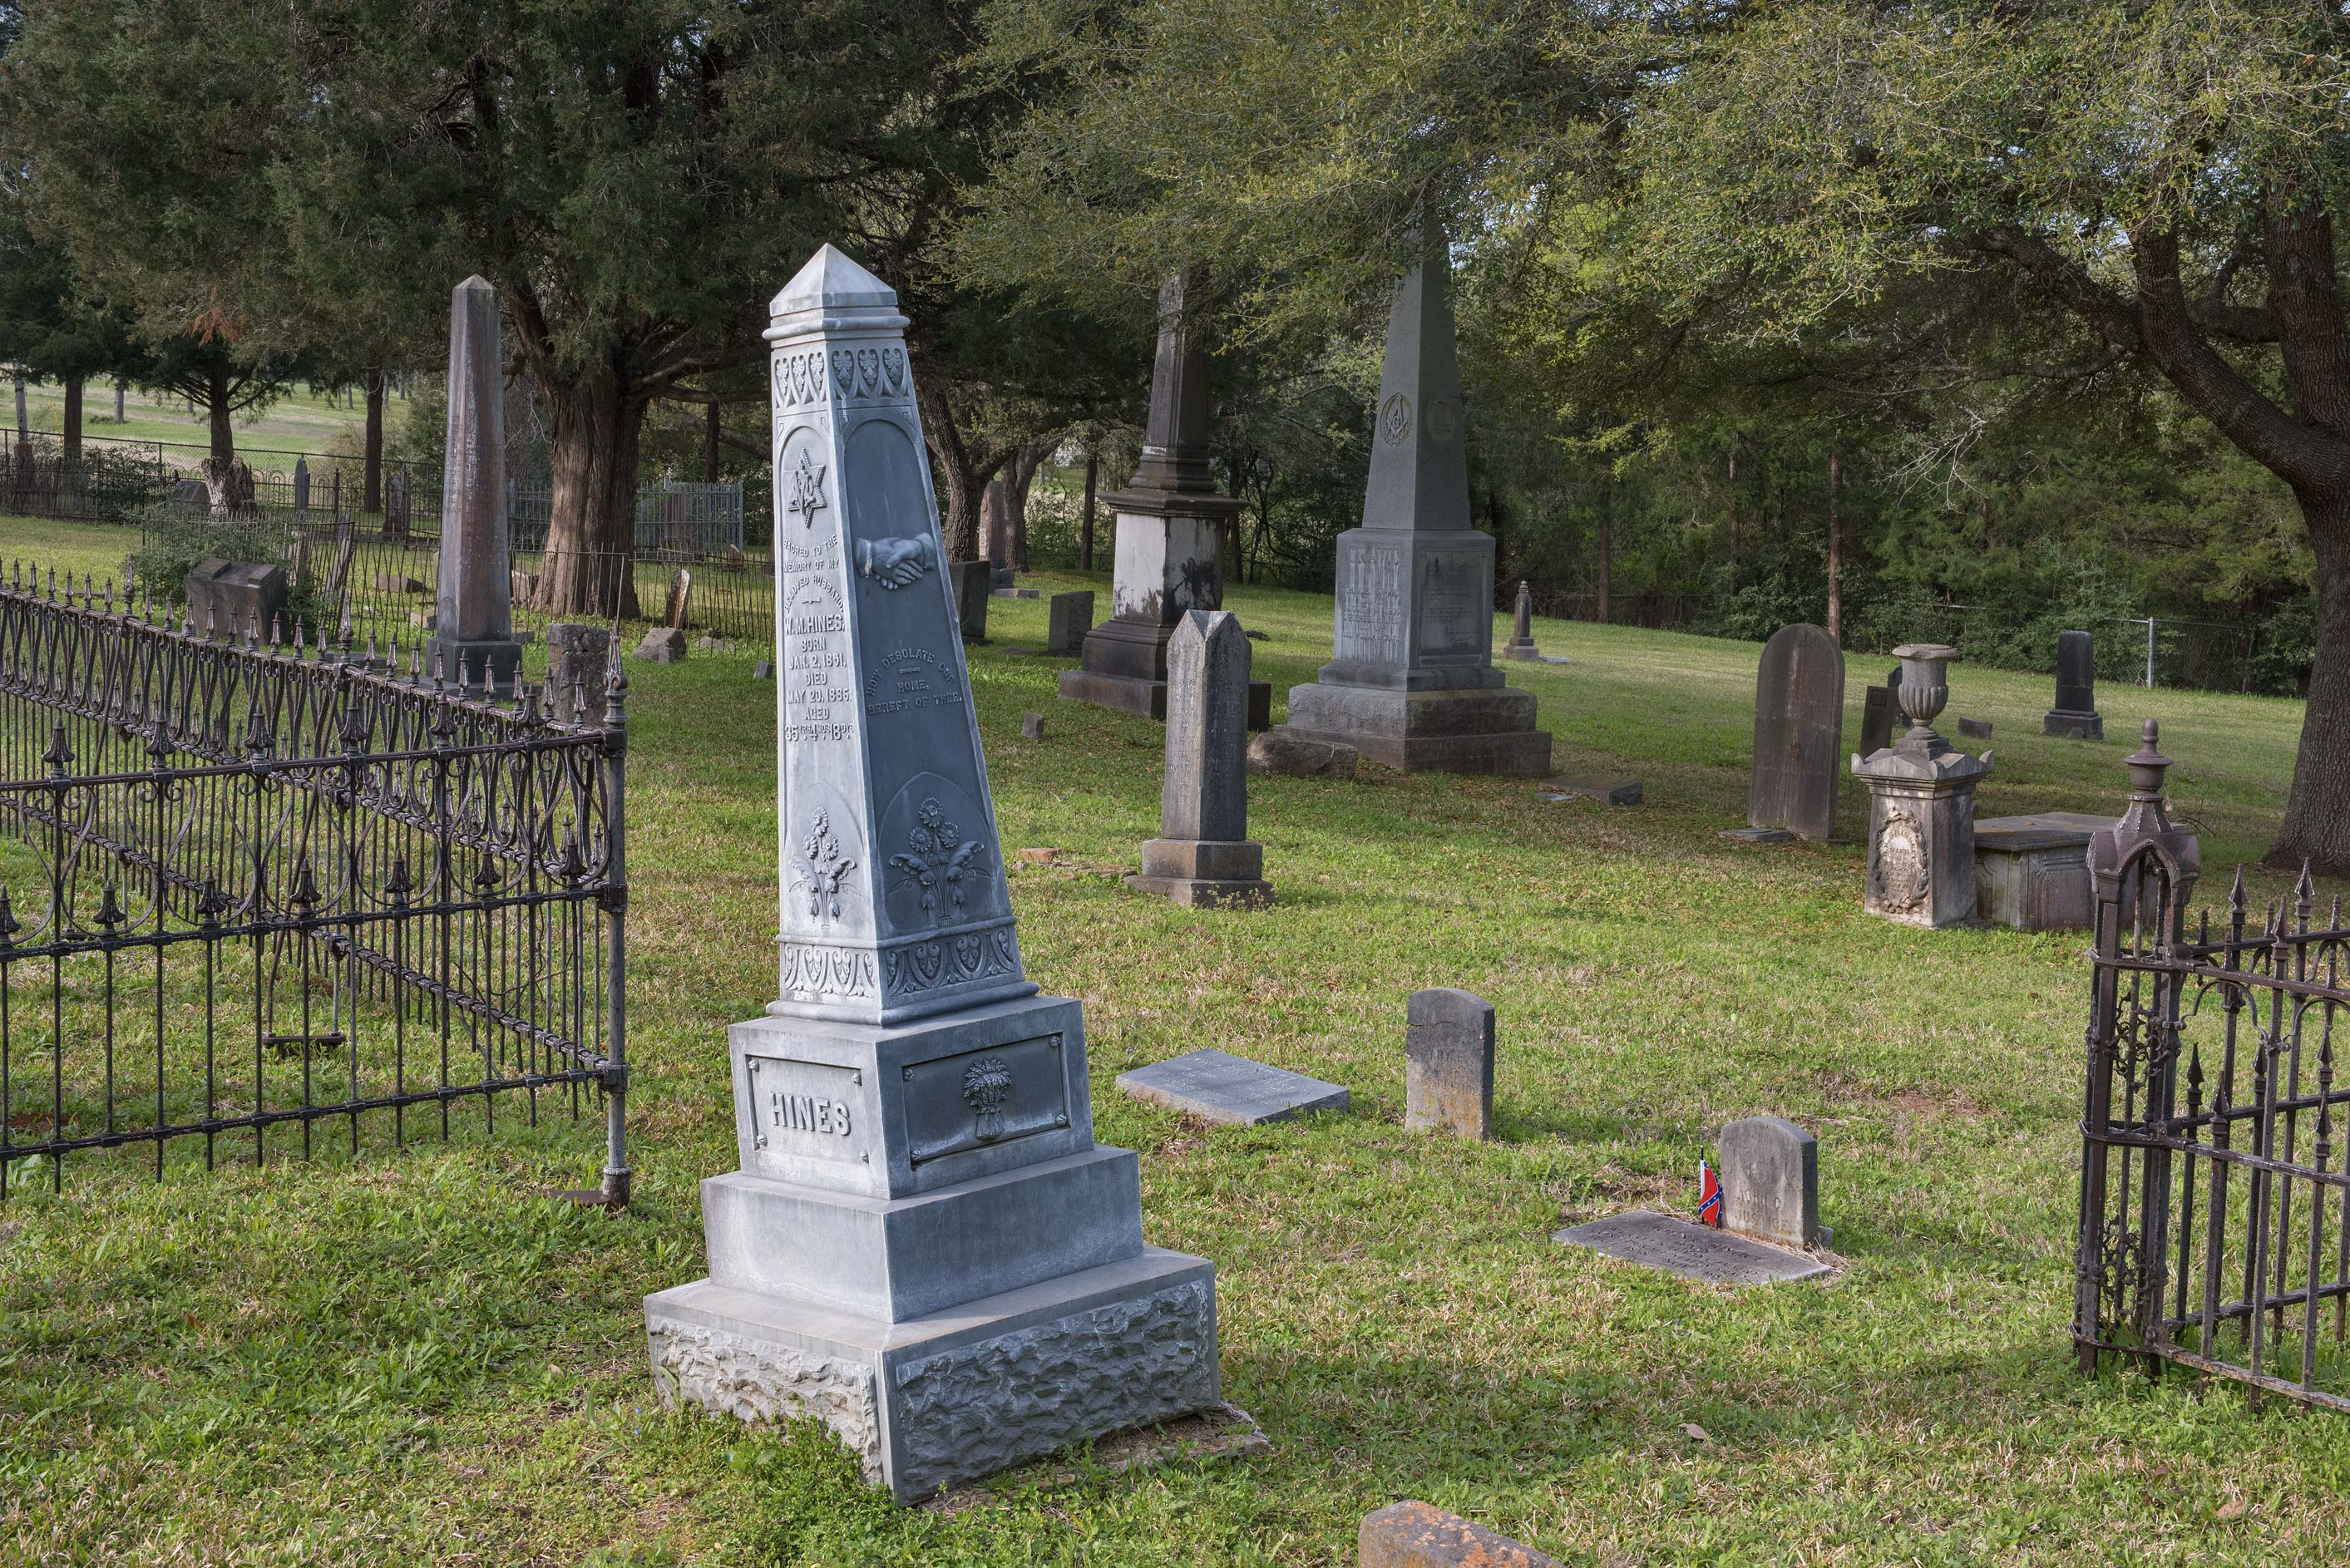 Blue tomb in Masonic Cemetery. Chappell Hill, Texas